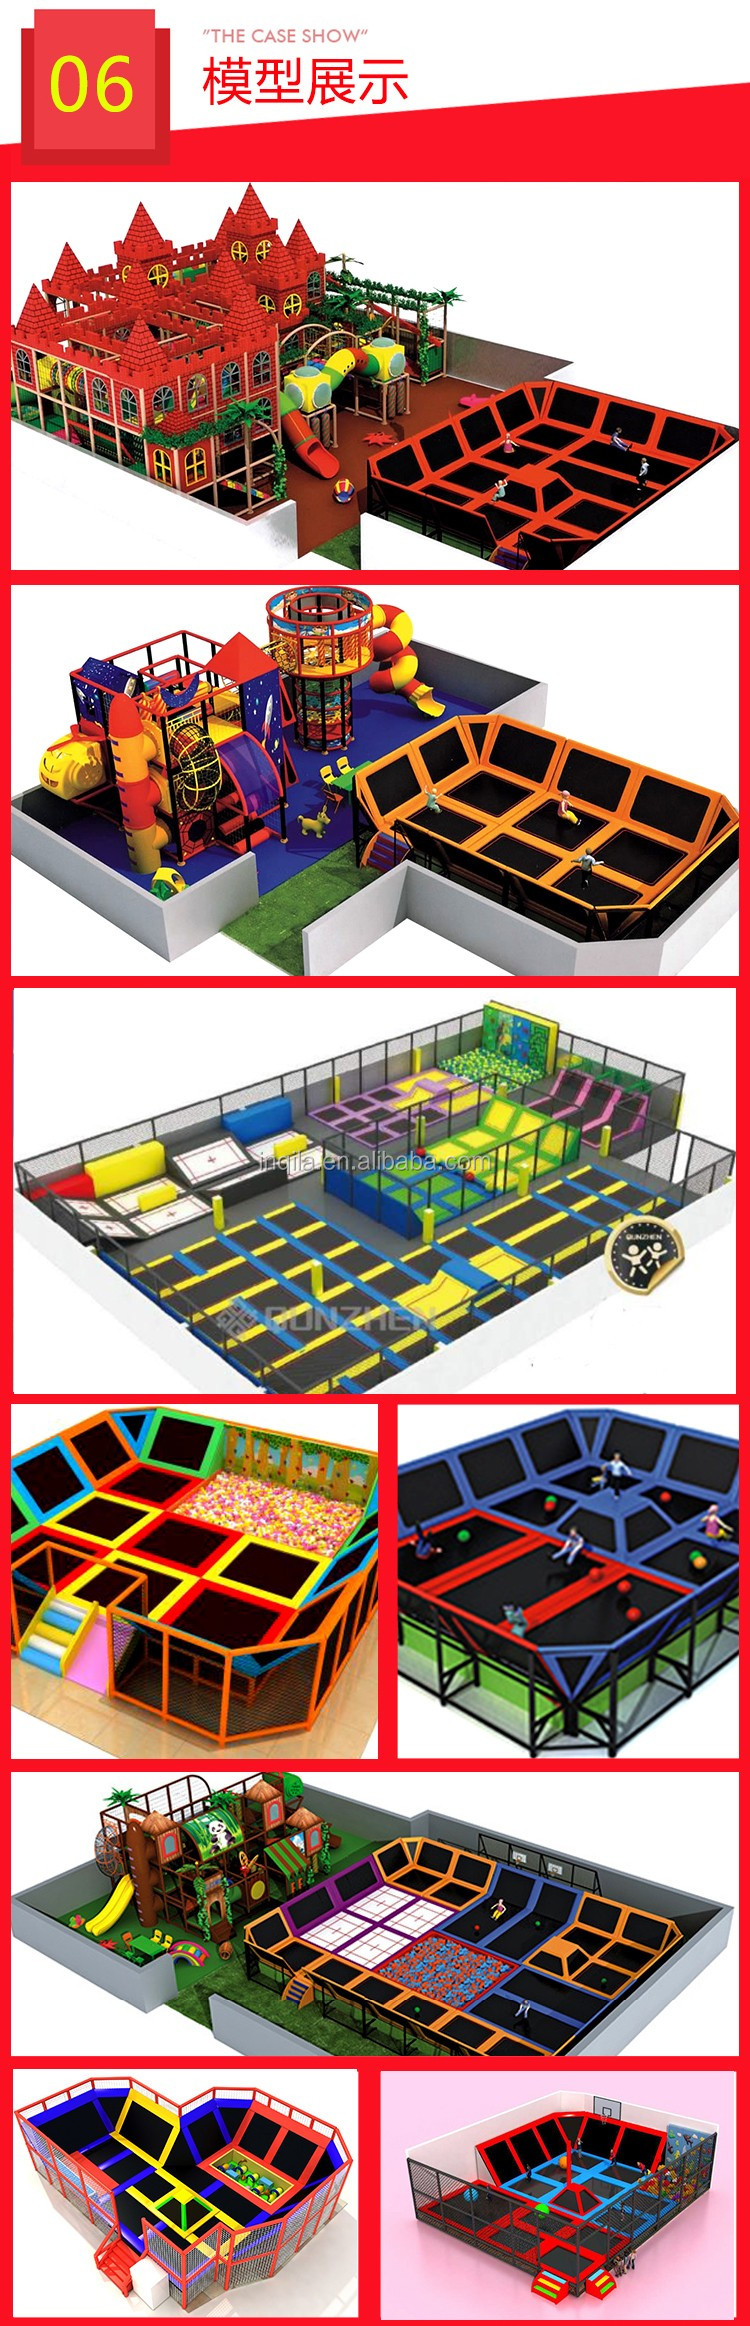 Design professional outdoor trampoline park kids indoor playground